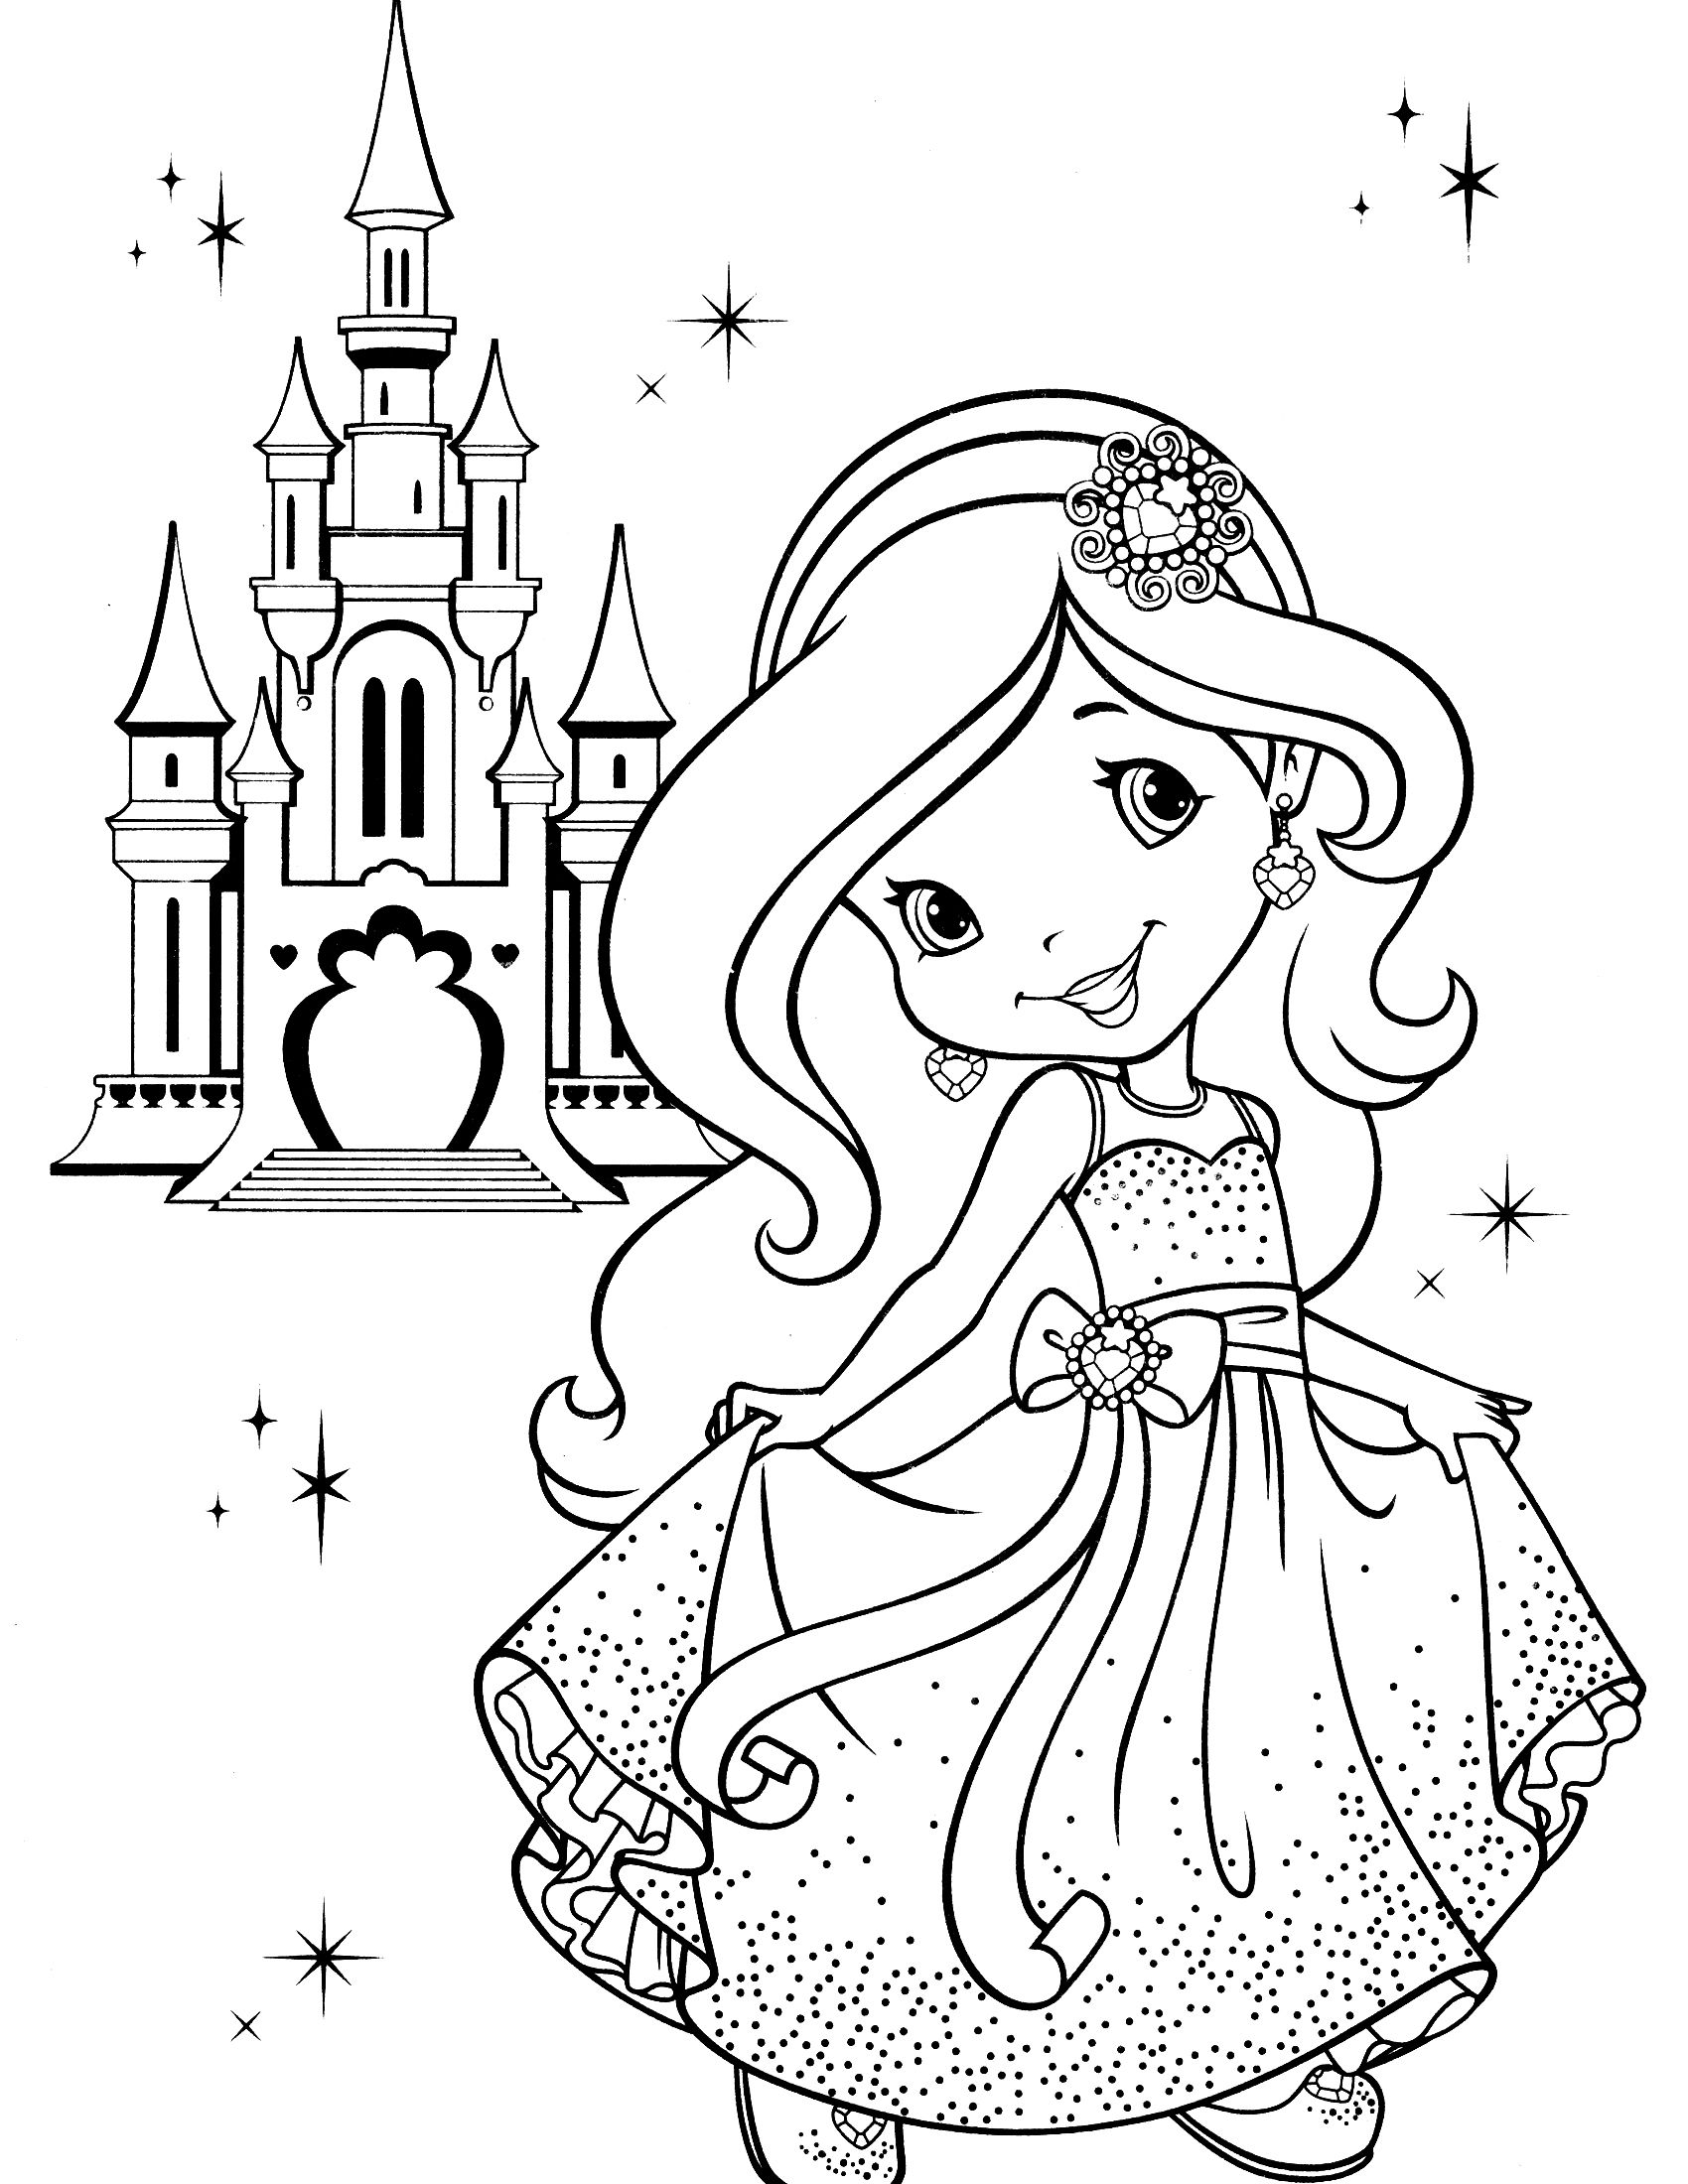 Strawberry Shortcake Coloring Page   Adult Coloring Book